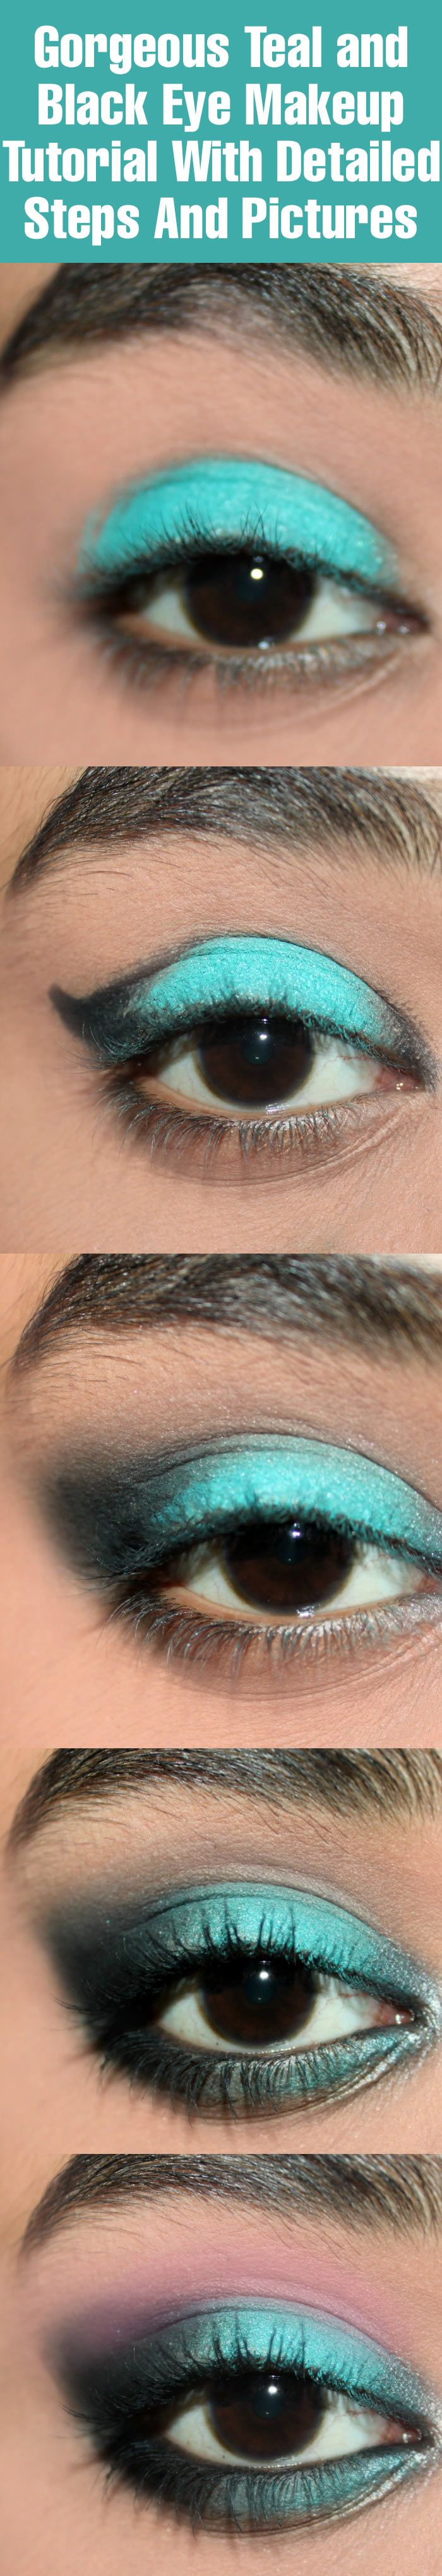 Gorgeous Teal and Black Eye Makeup – Tutorial With Detailed Steps And Pictures